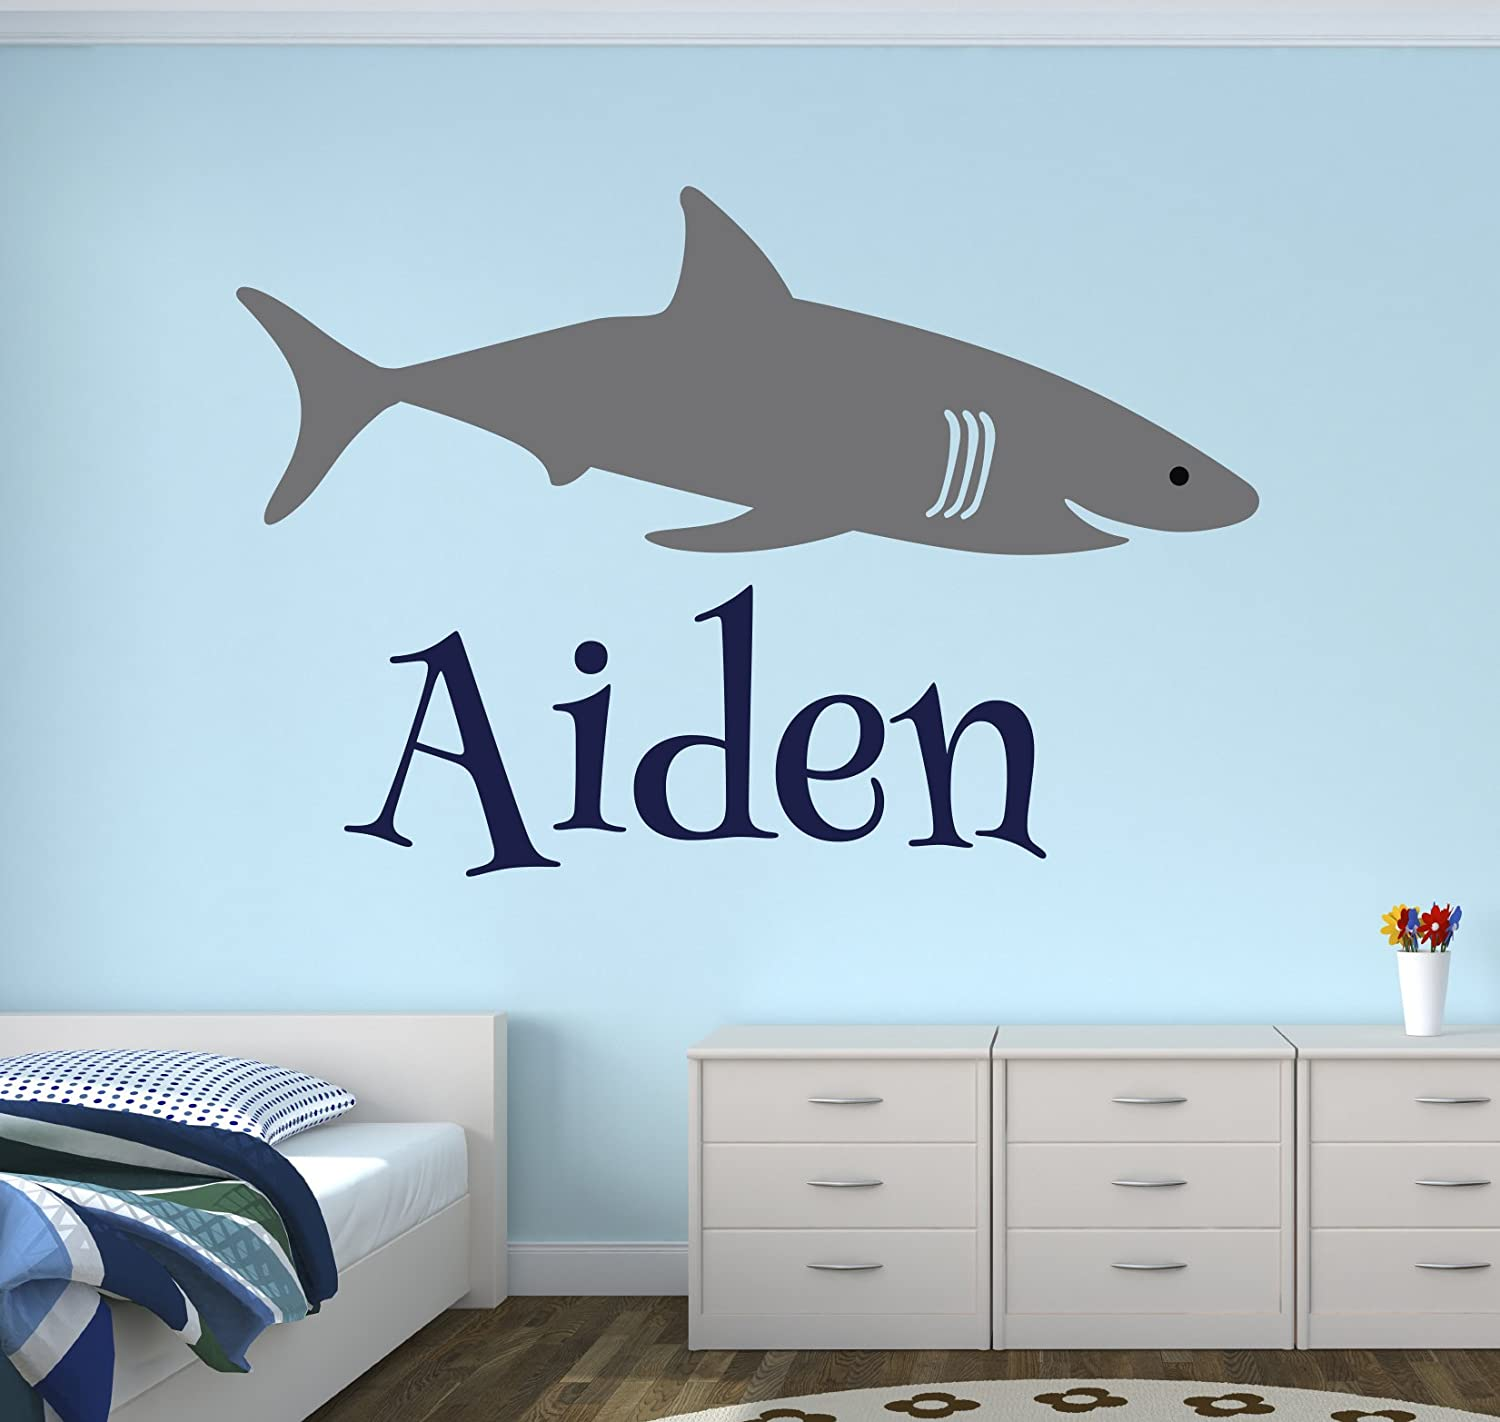 Personalized Name Shark Wall Decal - Boy Name Wall Decal Kids Room Decor - Shark Wall Decal Nursery Decor (40Wx26H)